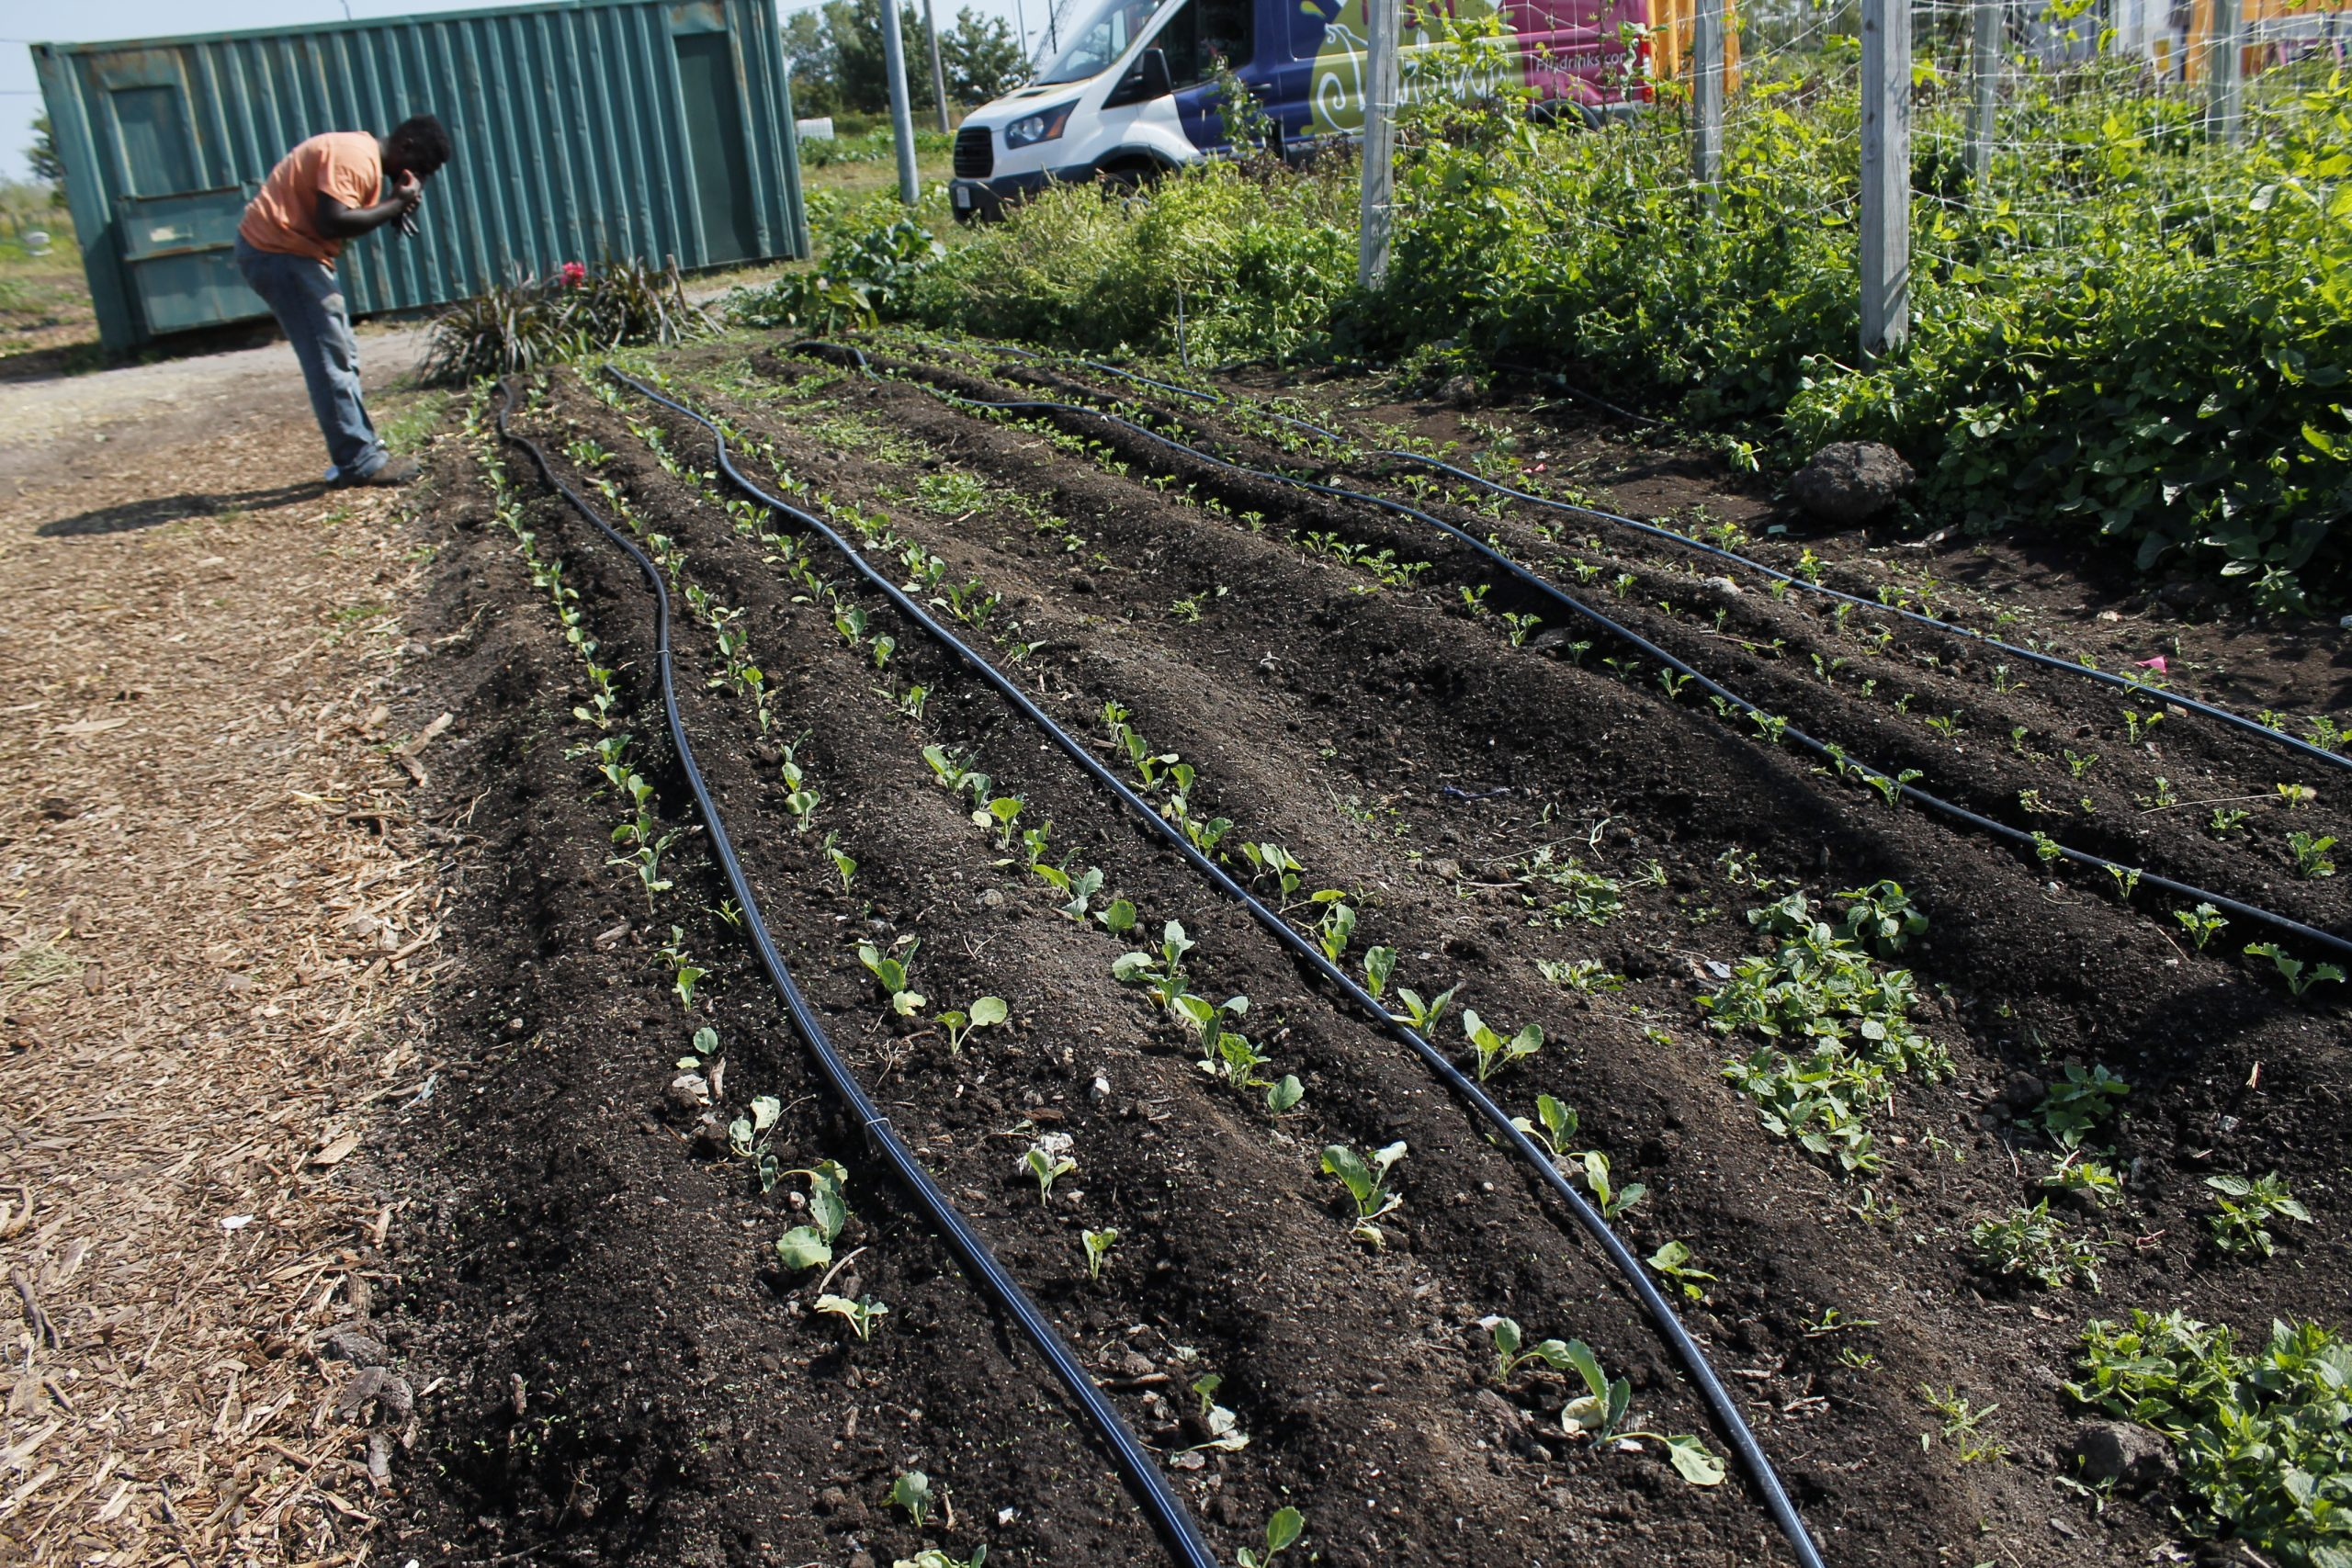 A committed crew helps keep UGC's eight urban farms producing organic produce year-round.